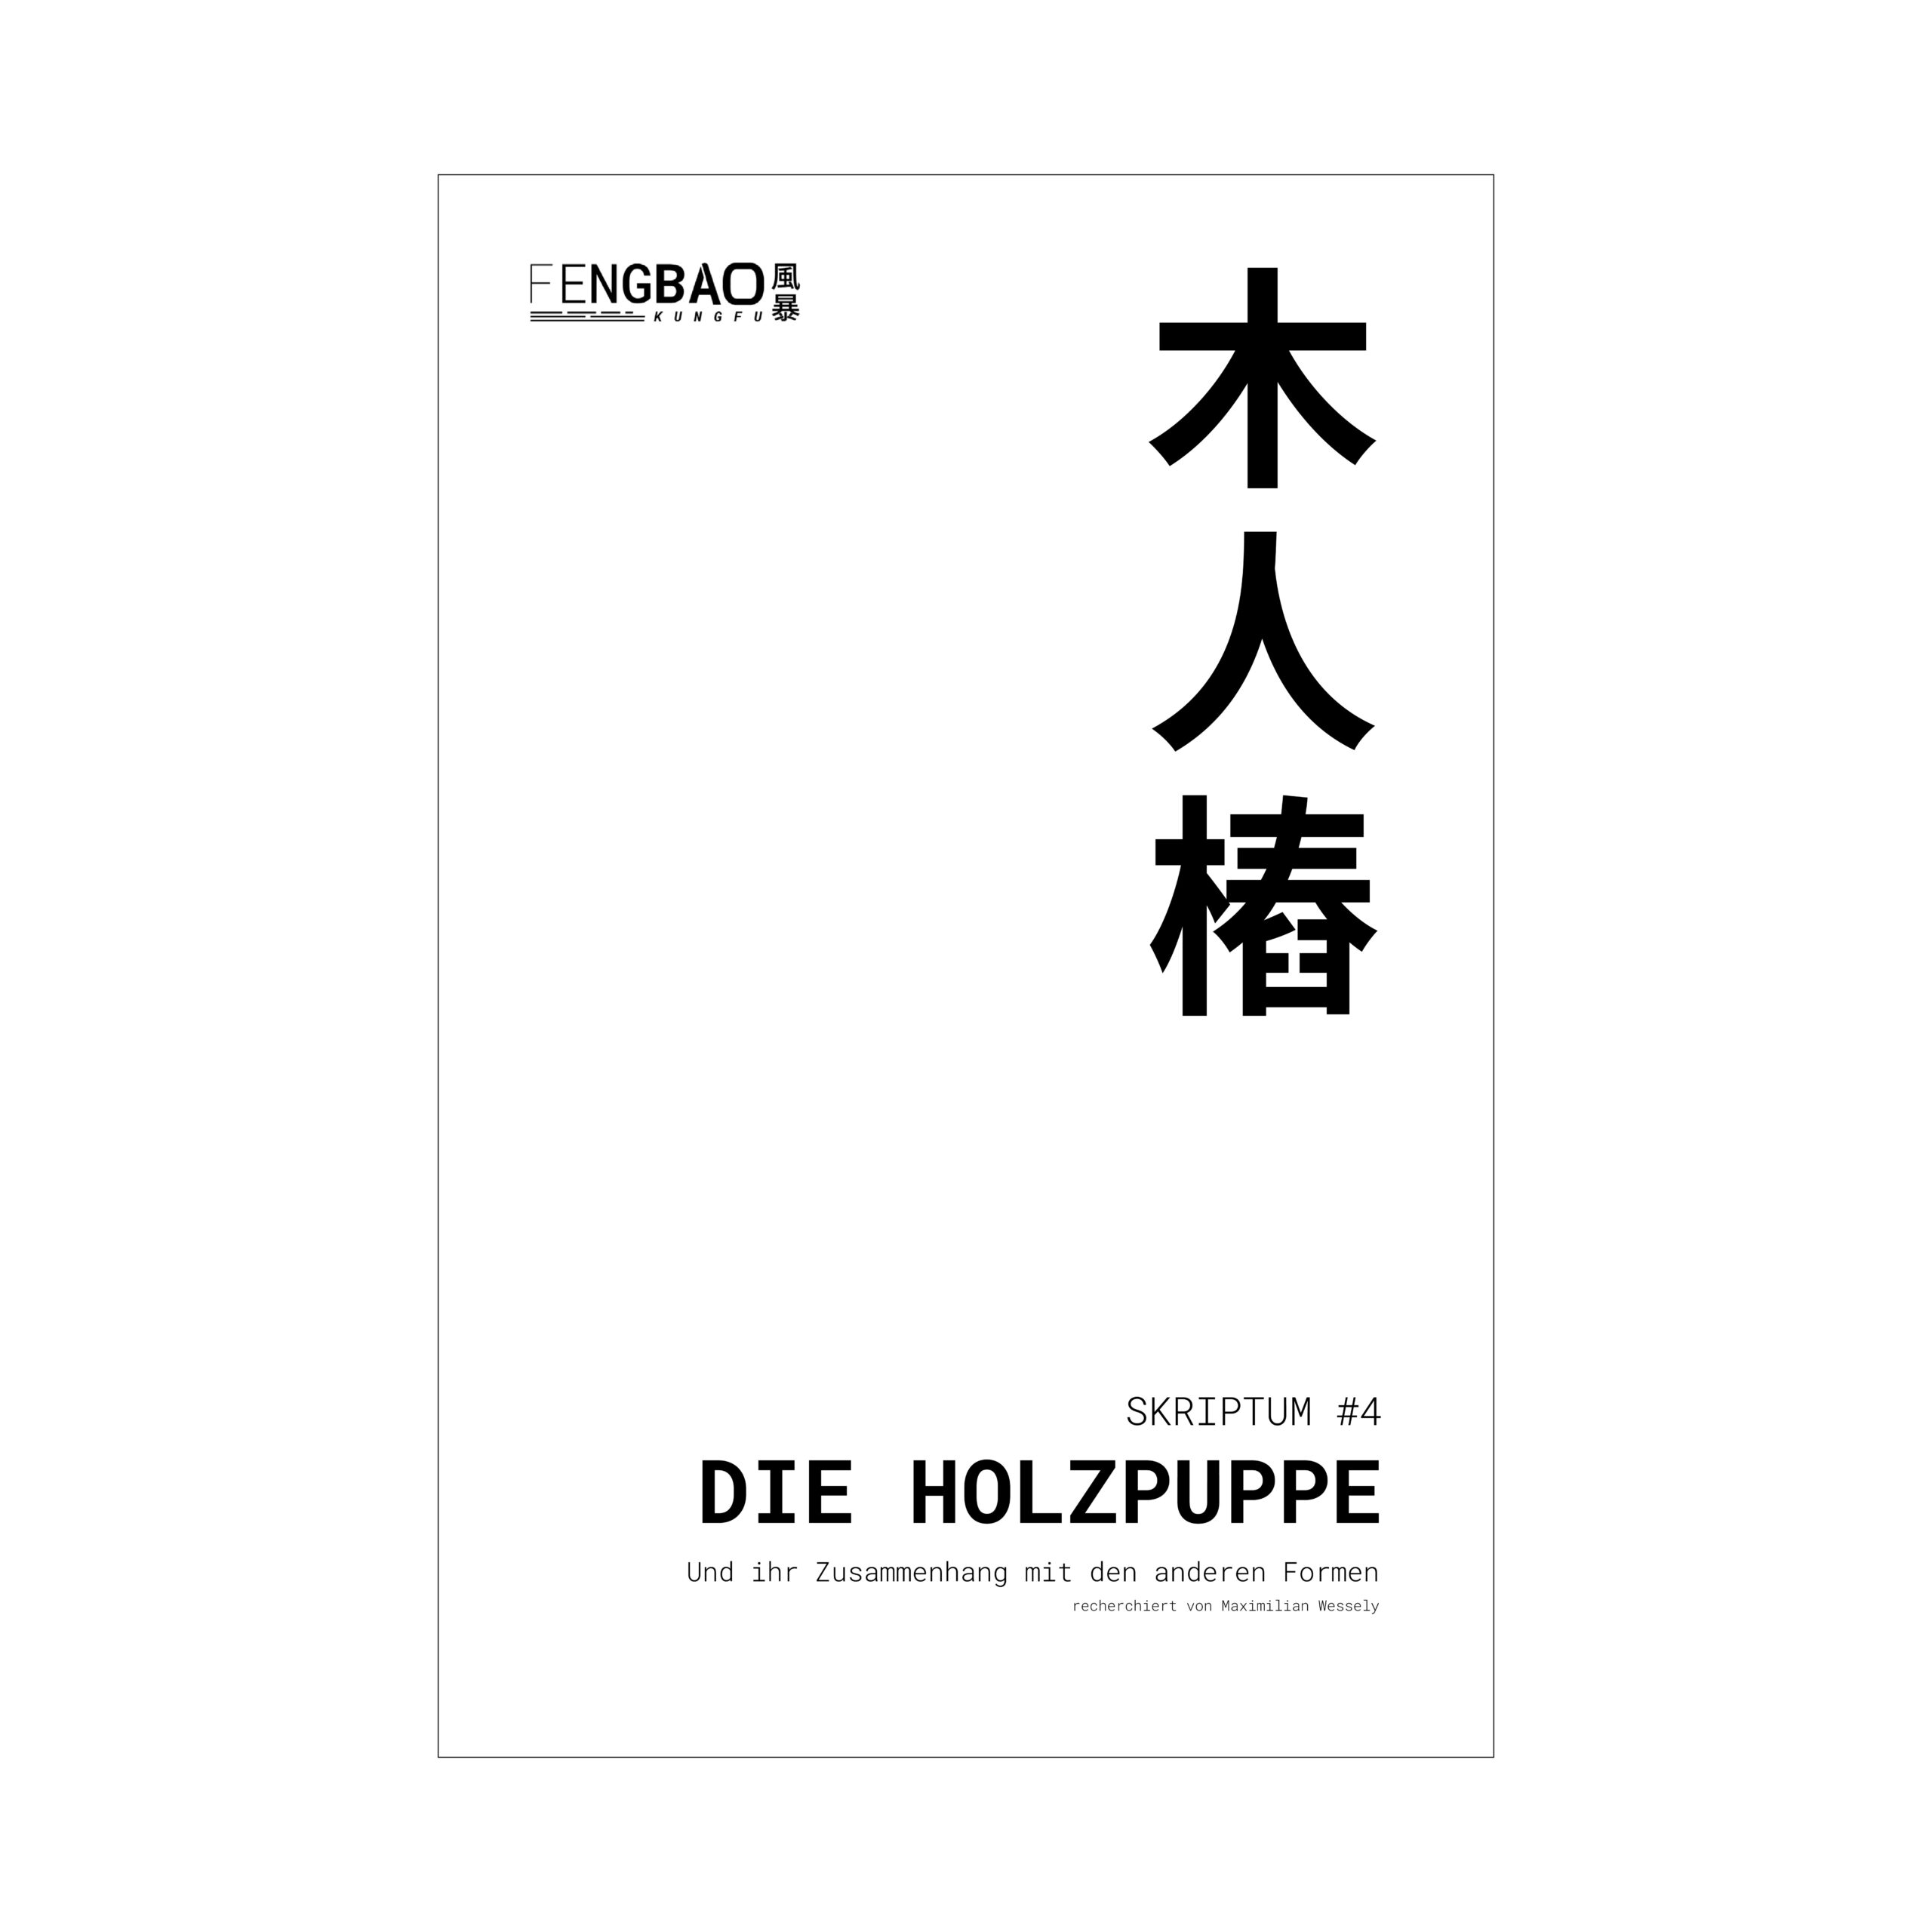 fengbao kung fu skriptum holzpuppe wing chun und andere formen